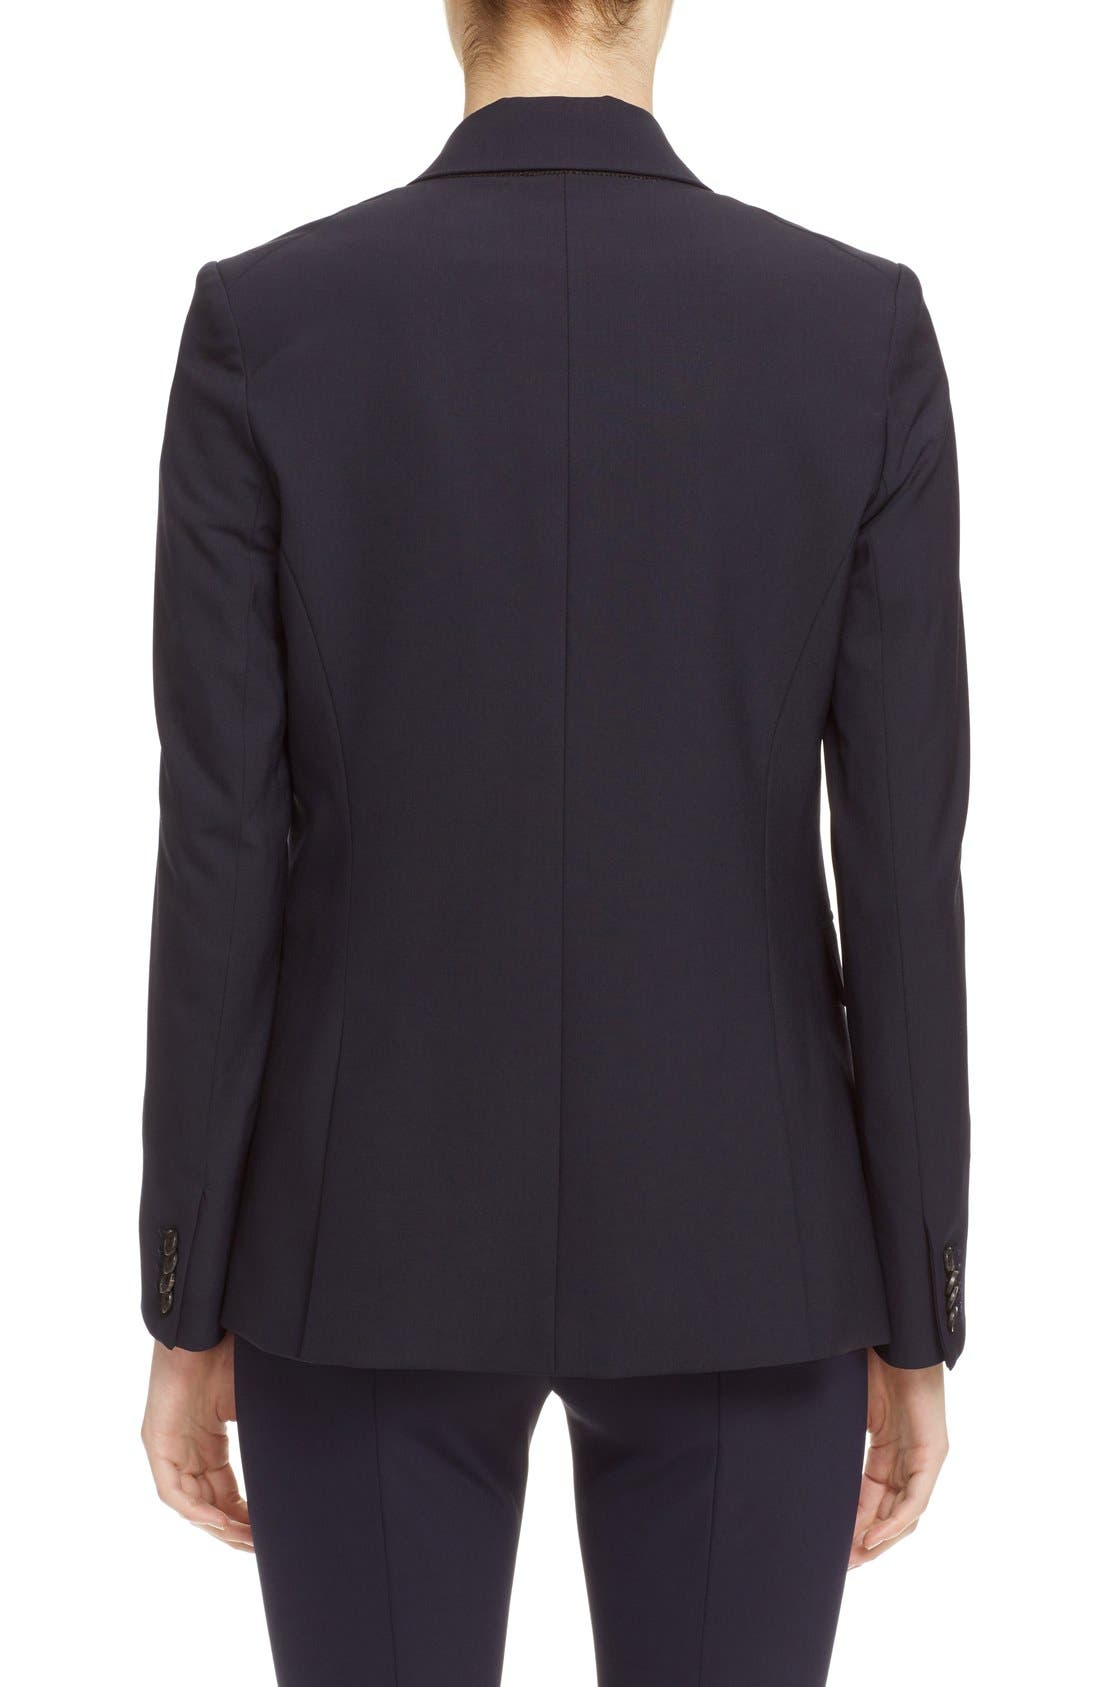 VERONICA BEARD, 'Classic' Lambswool Blend Single Button Blazer, Alternate thumbnail 2, color, NAVY